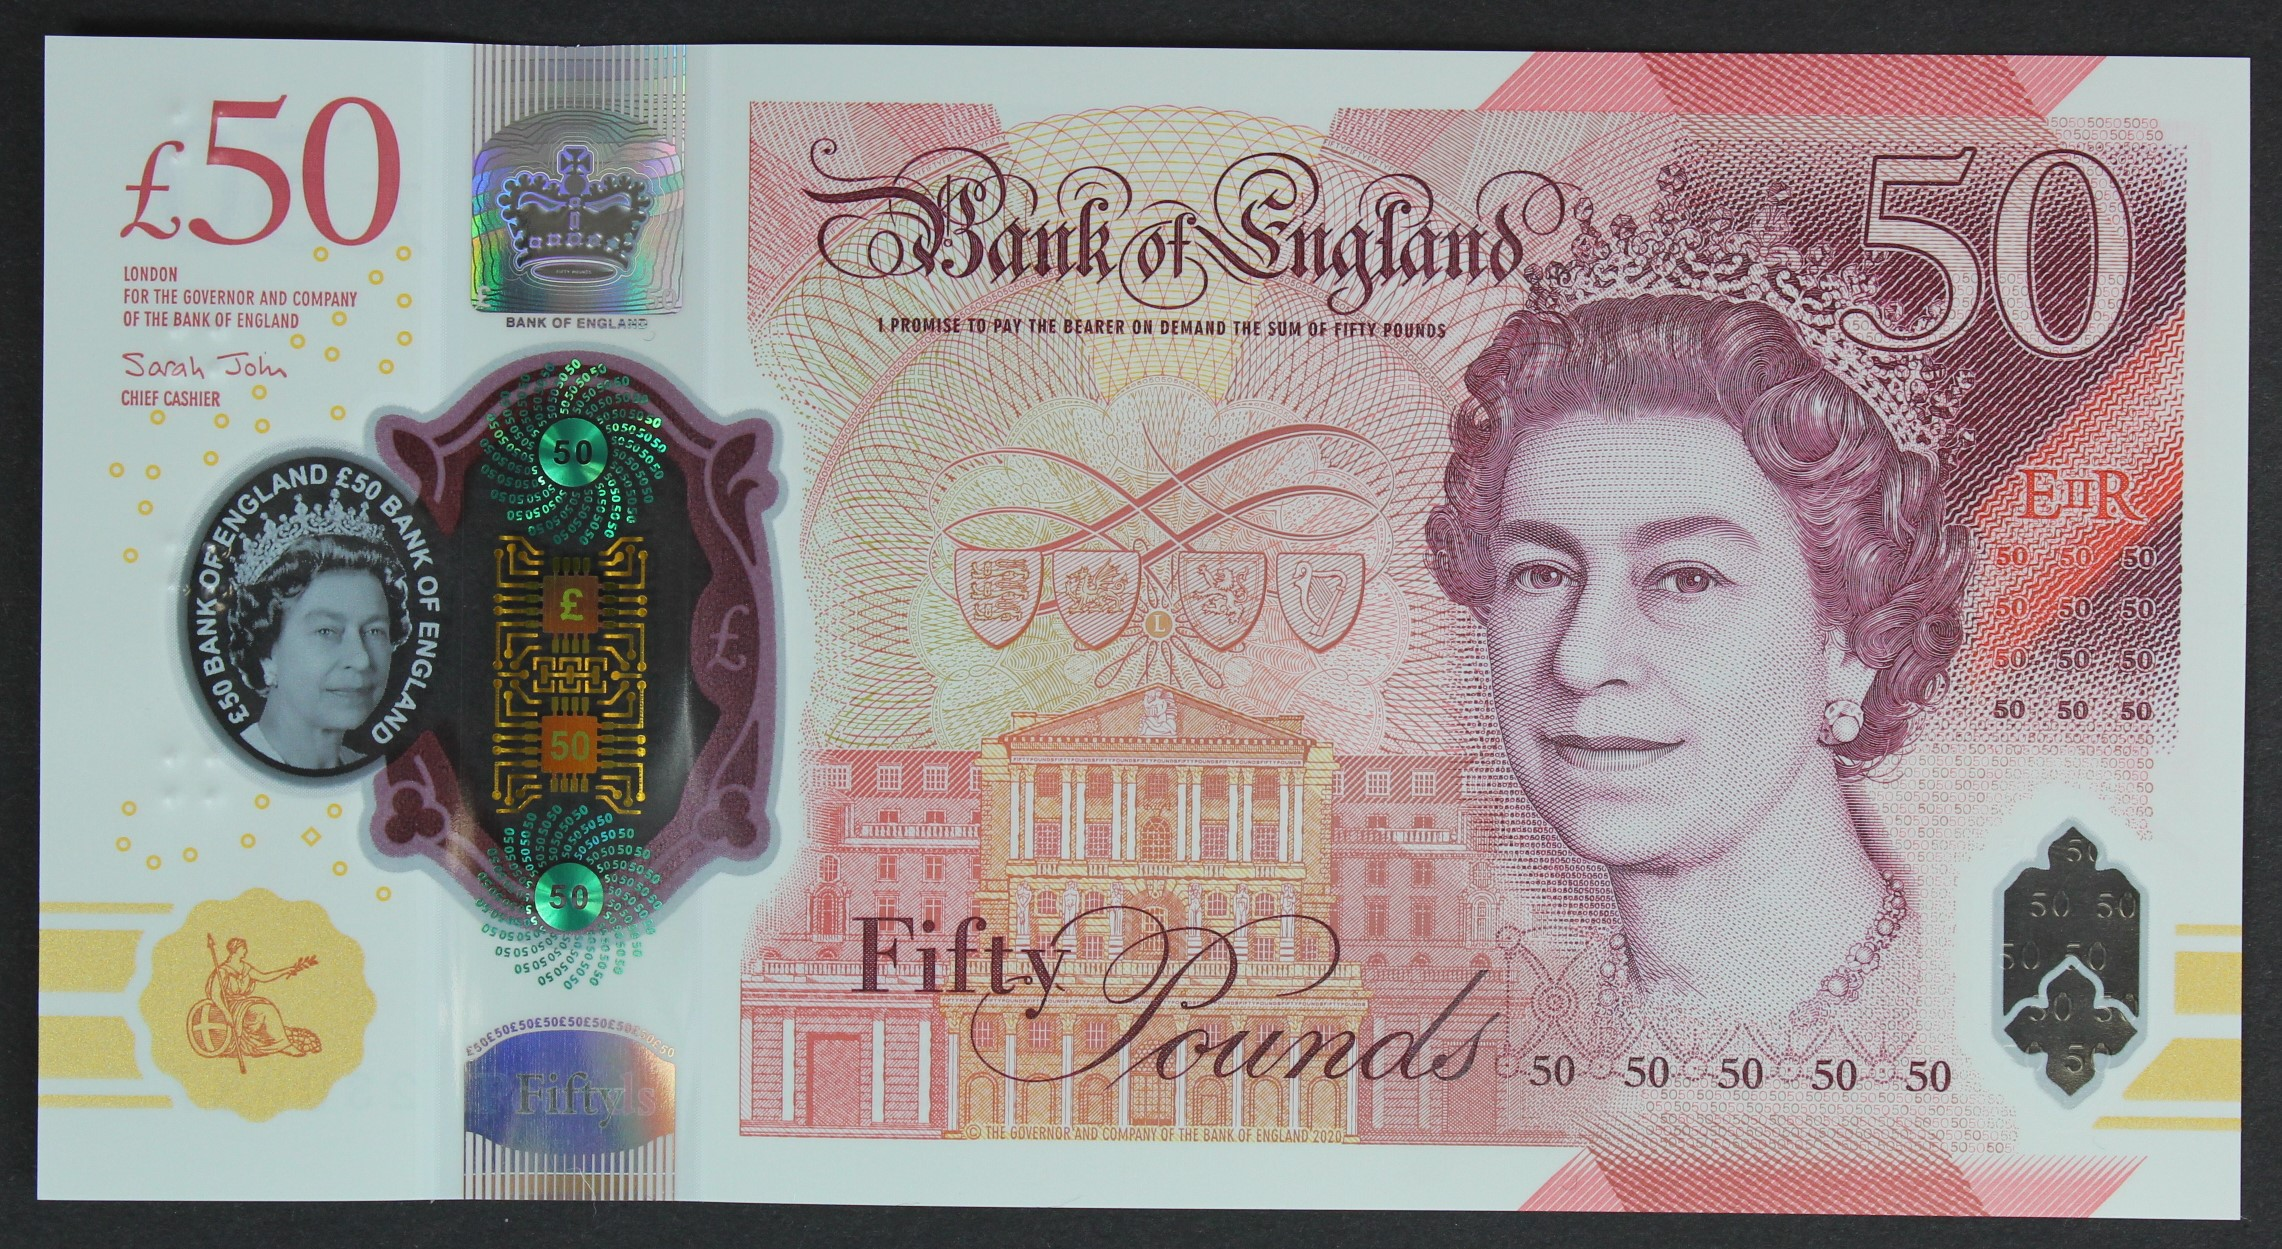 Sarah John 50 Pounds, new polymer issue with portrait of Alan Turing on reverse, a FIRST RUN ' - Image 2 of 2